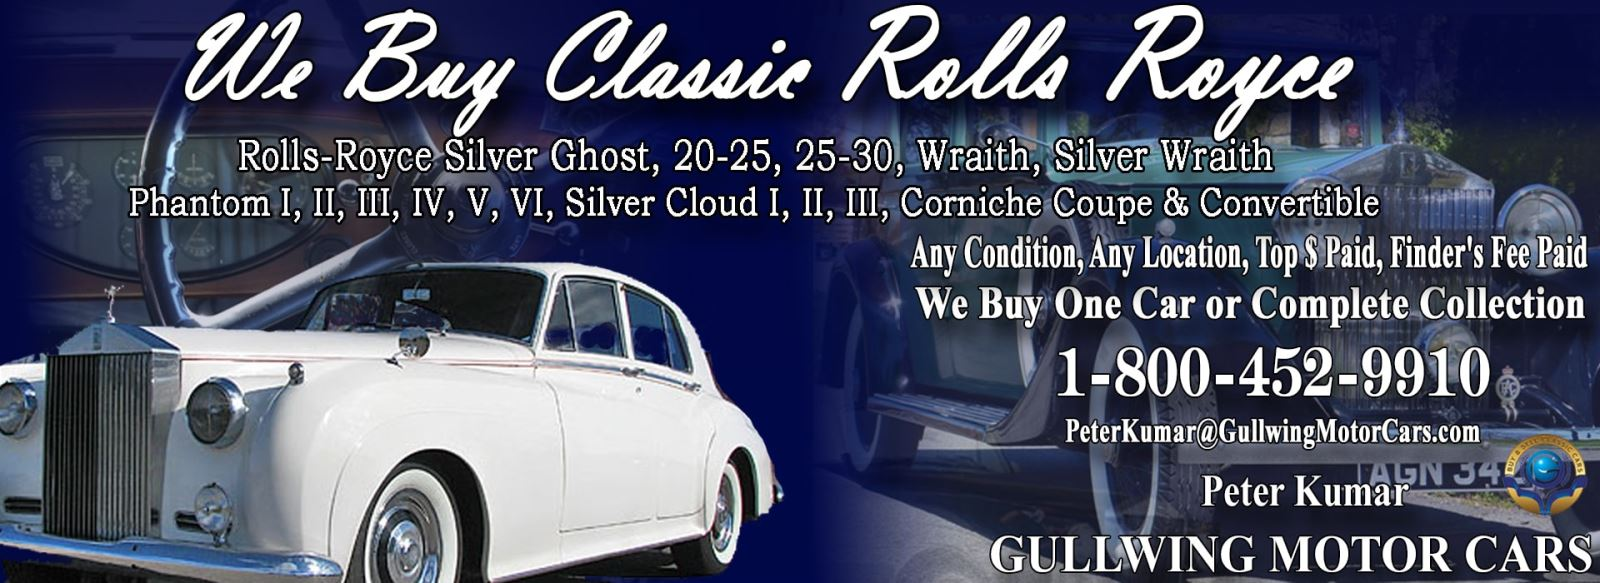 Classic Rolls Royce Silver Ghost for sale, we buy vintage Rolls Royce Silver Ghost. Call Peter Kumar. Gullwing Motor